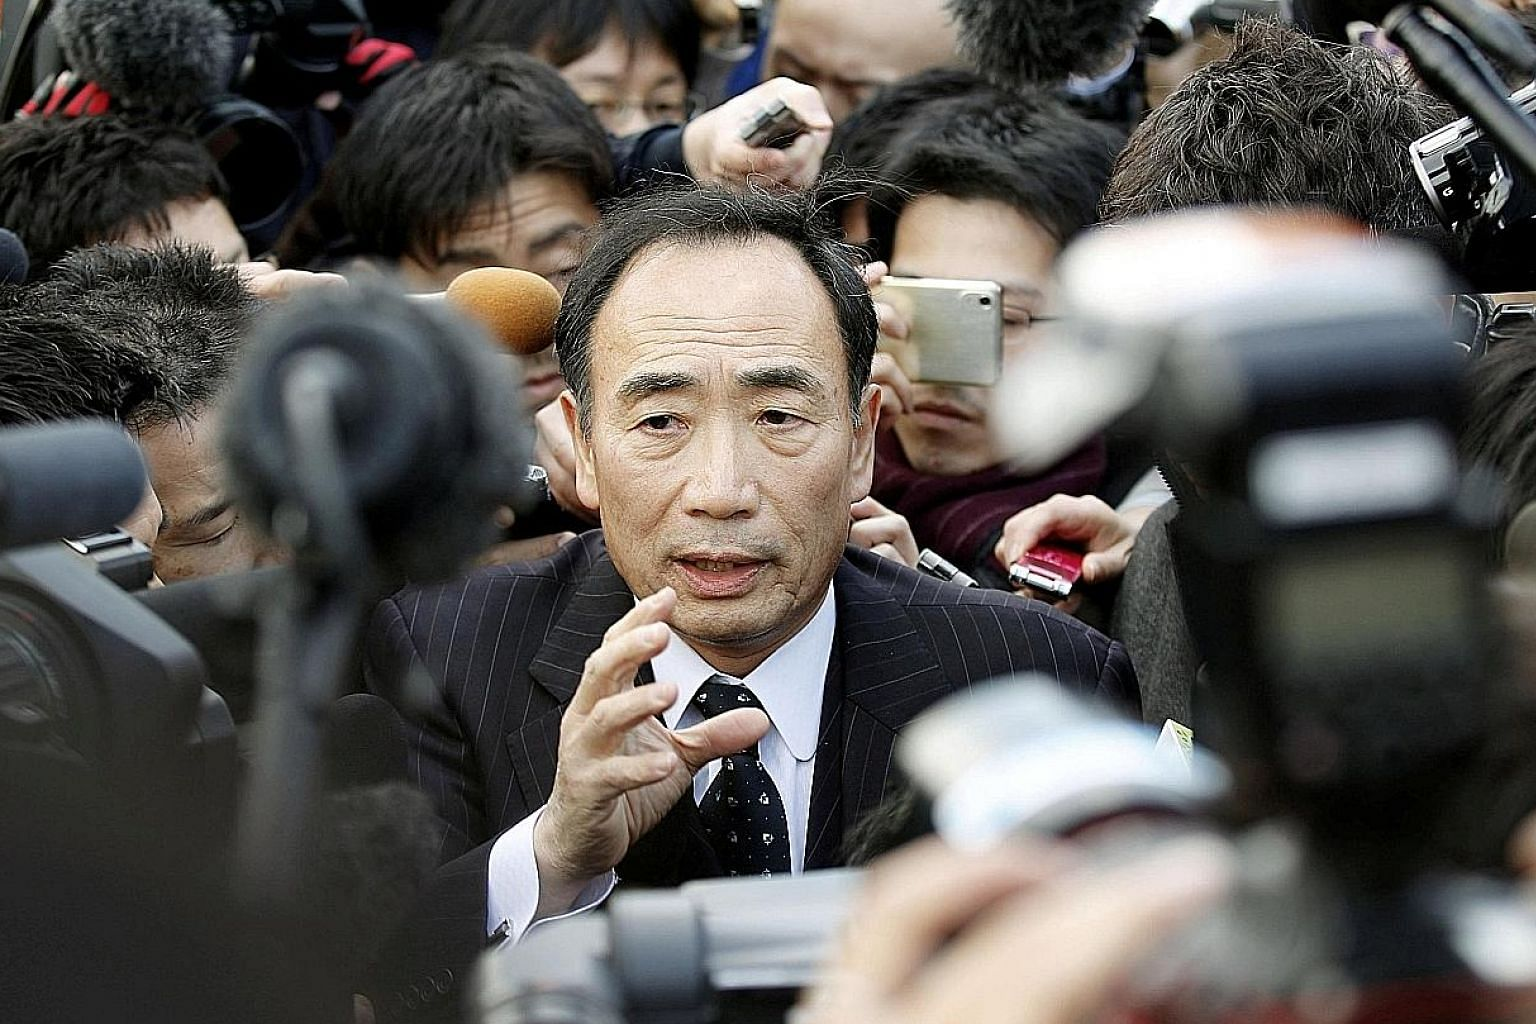 Mr Kagoike has resigned over his failure to open Moritomo Gakuen's Osaka elementary school, whose permit to launch was revoked over fraudulent contracts.